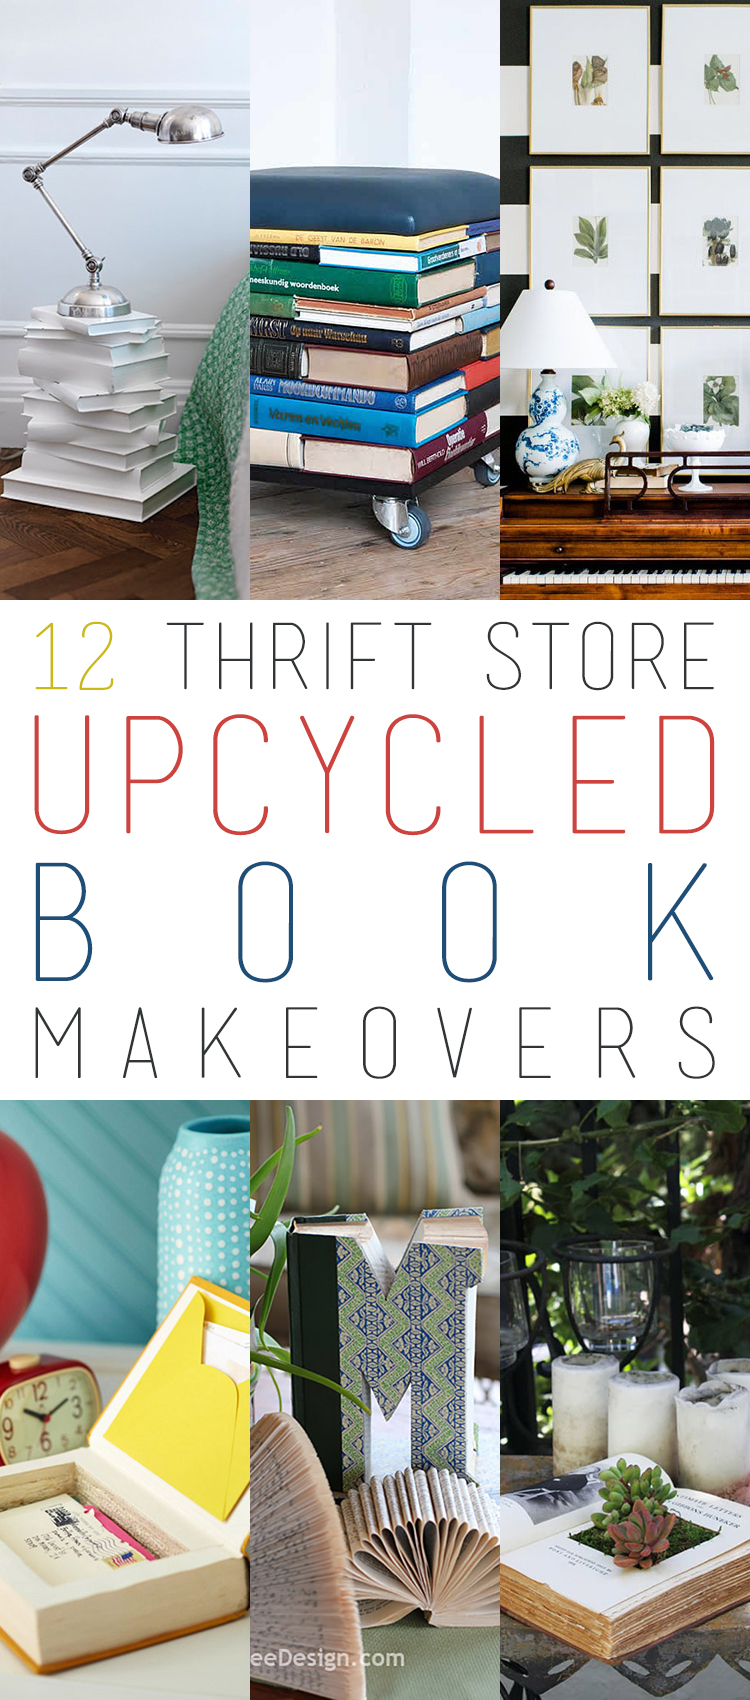 UpcycledBooks-TOWER-0001